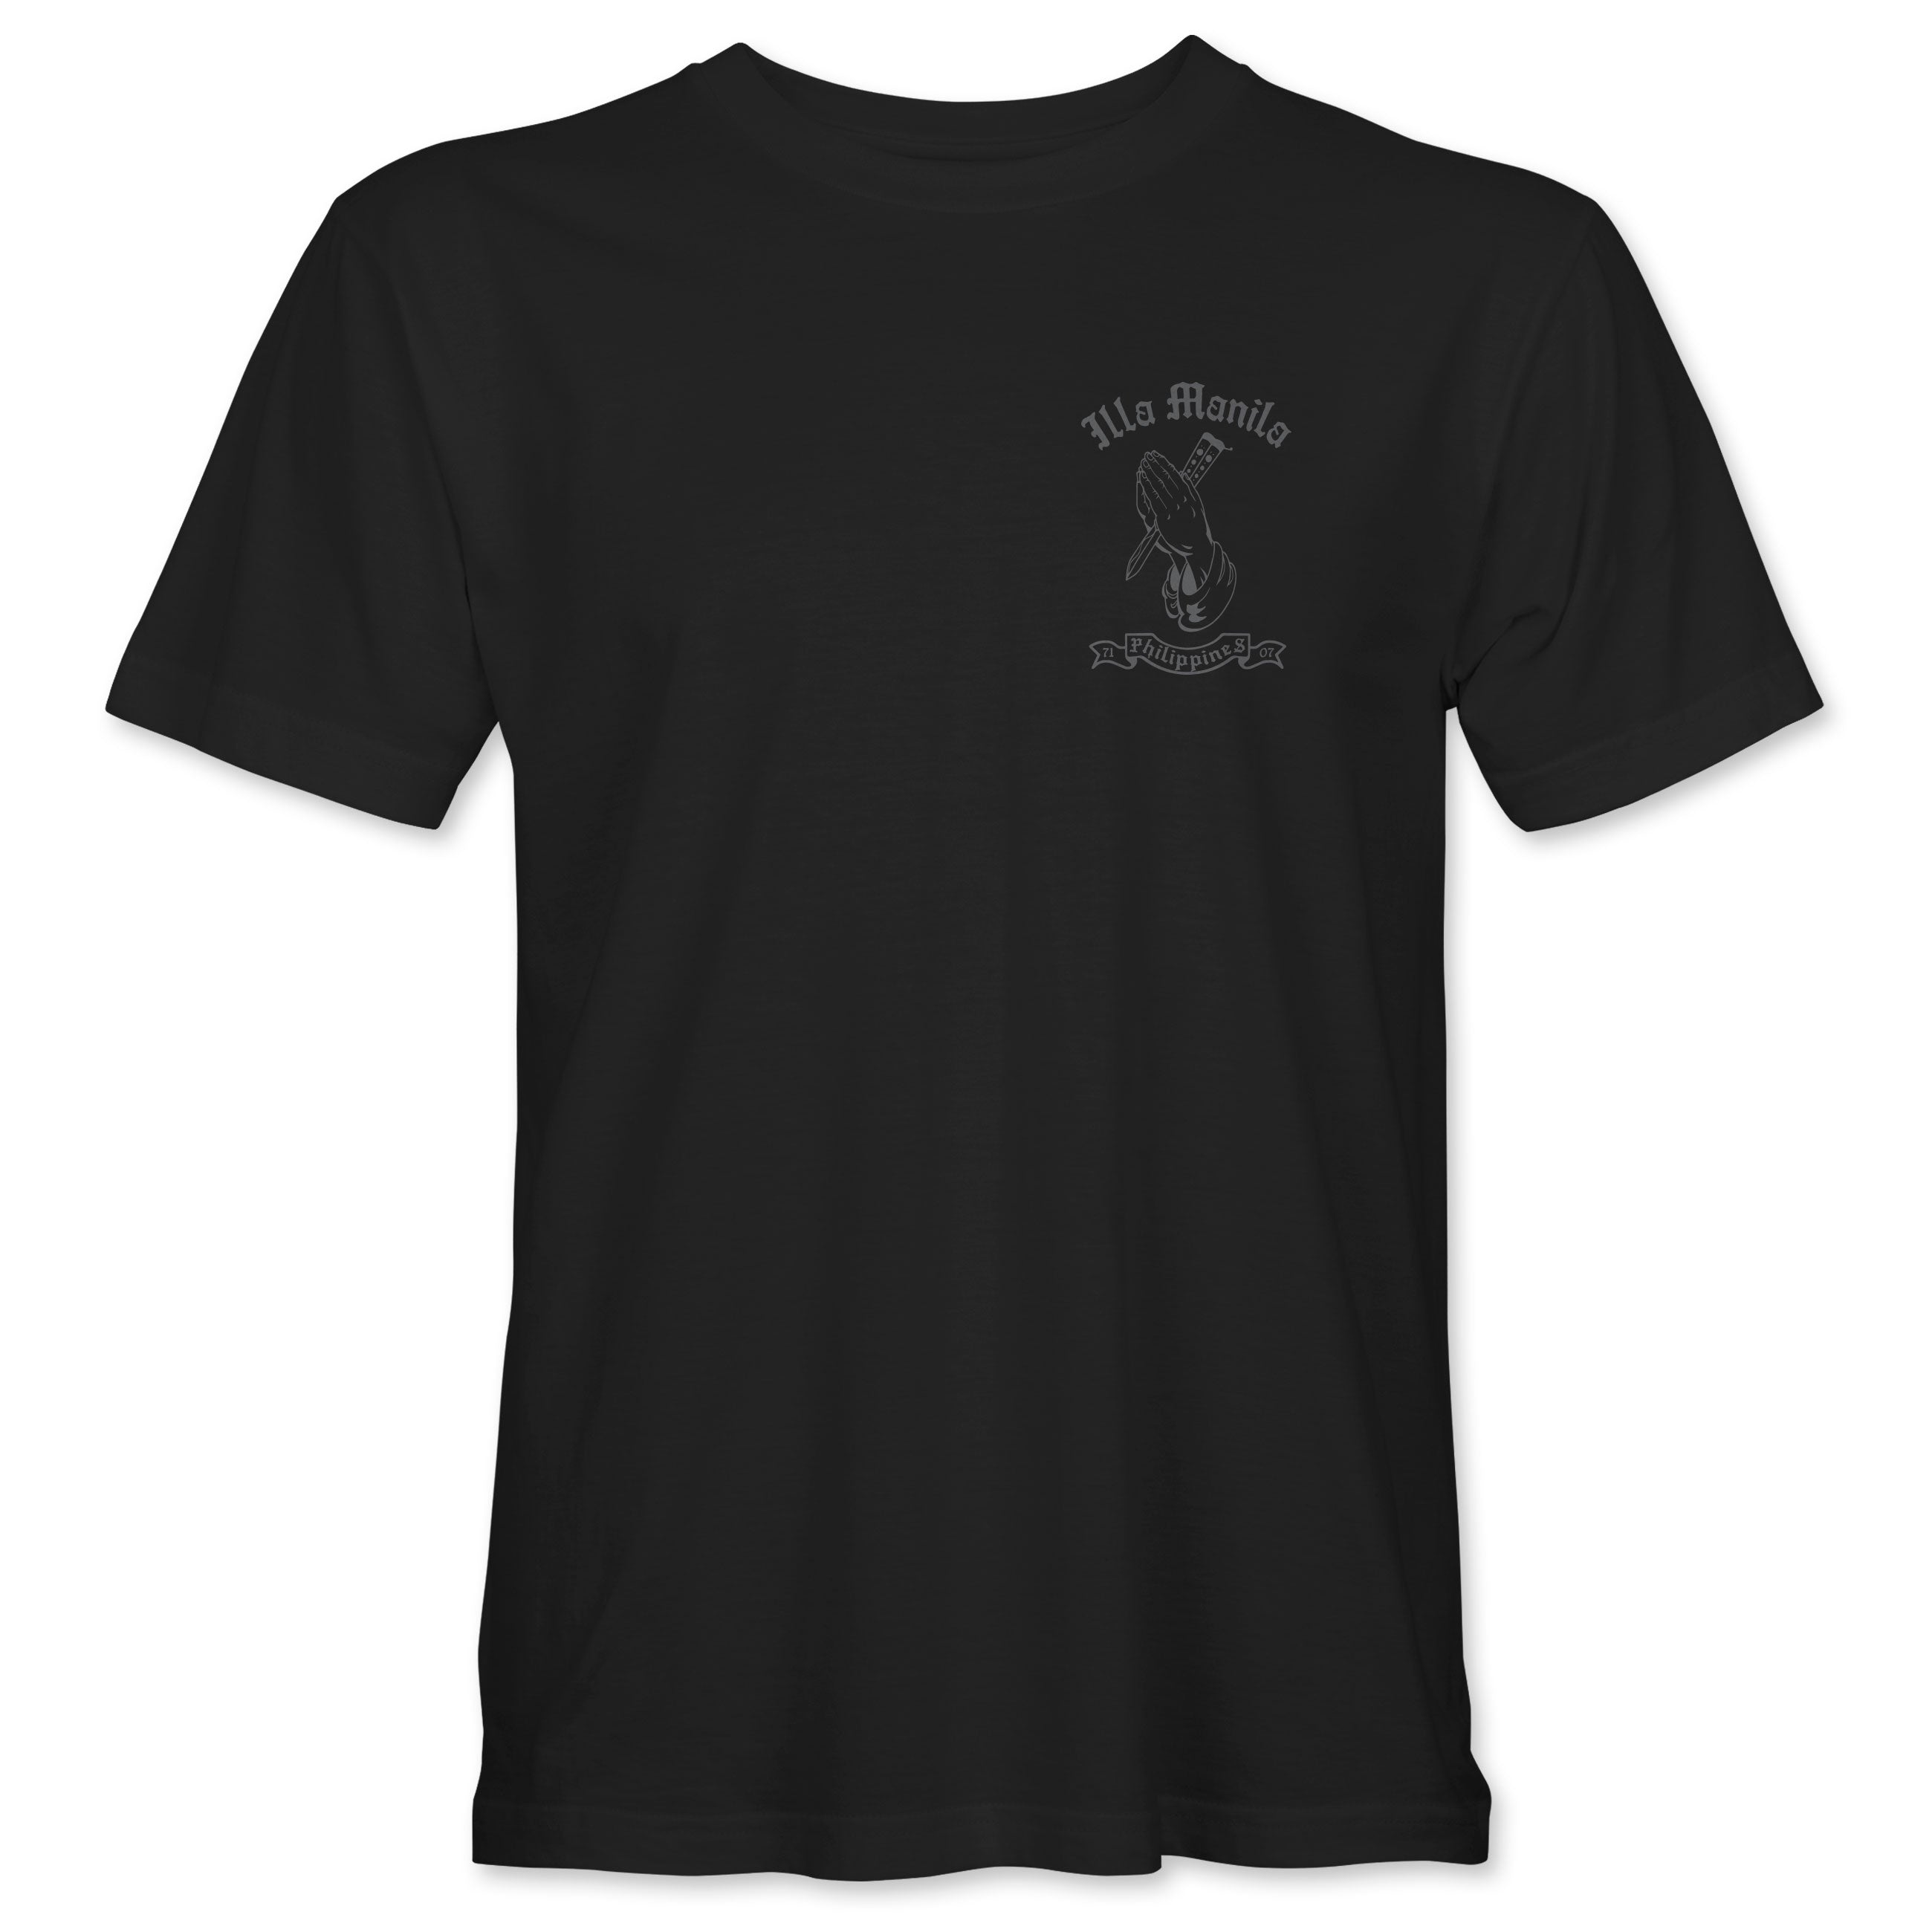 Praying Hands Balisong T-shirt - Gray/Black